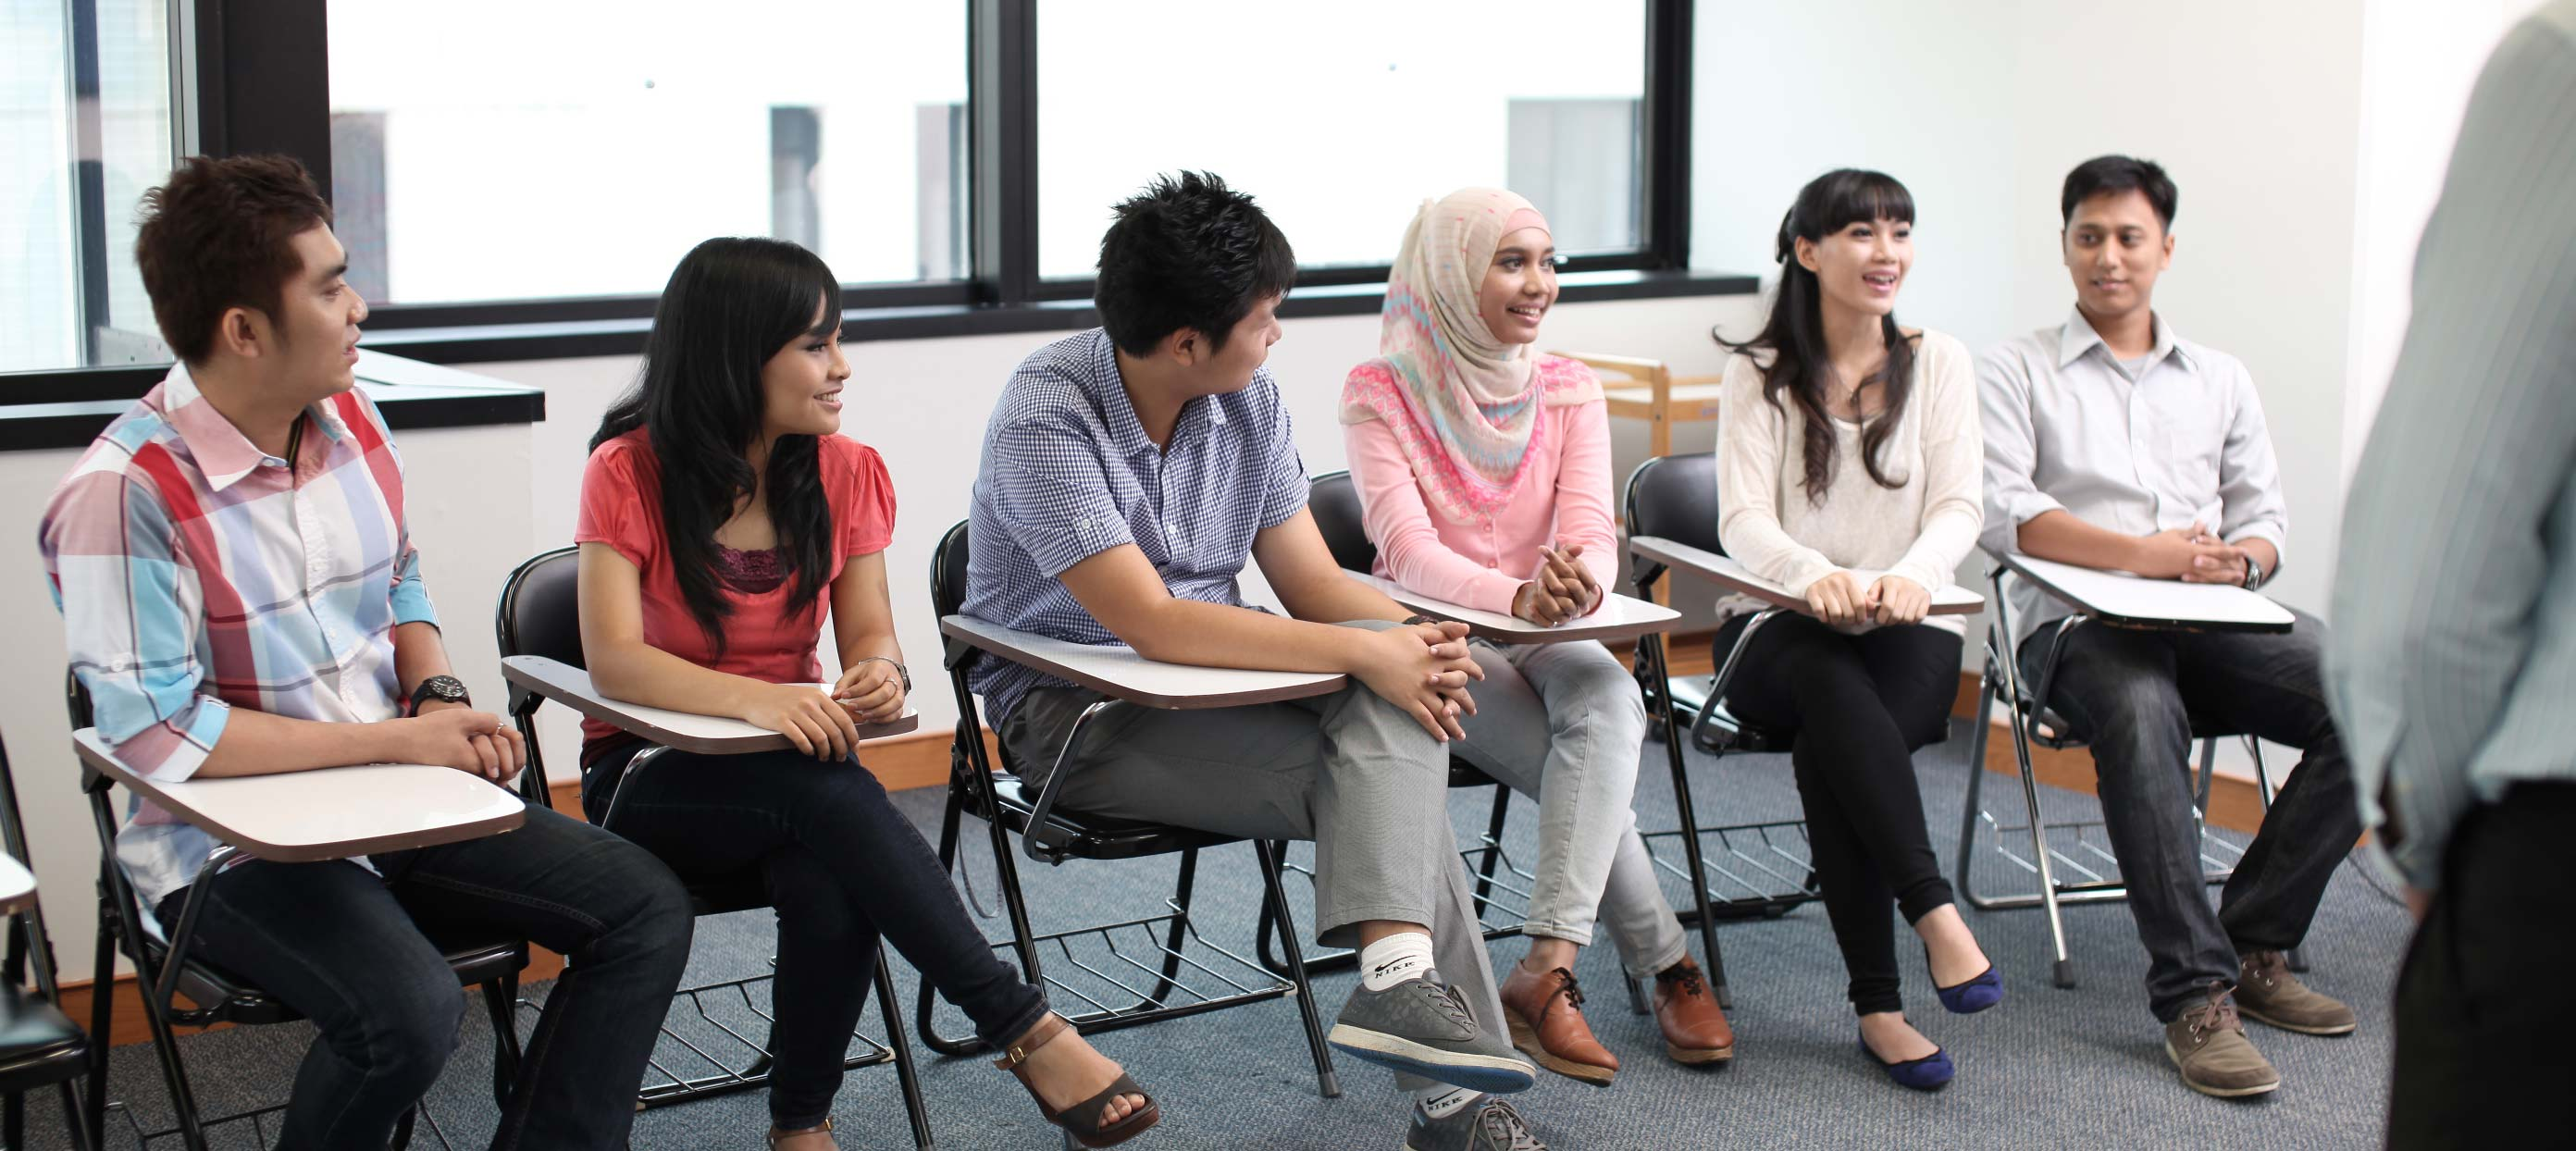 Learning English Facilities - Classroom IALF Jakarta